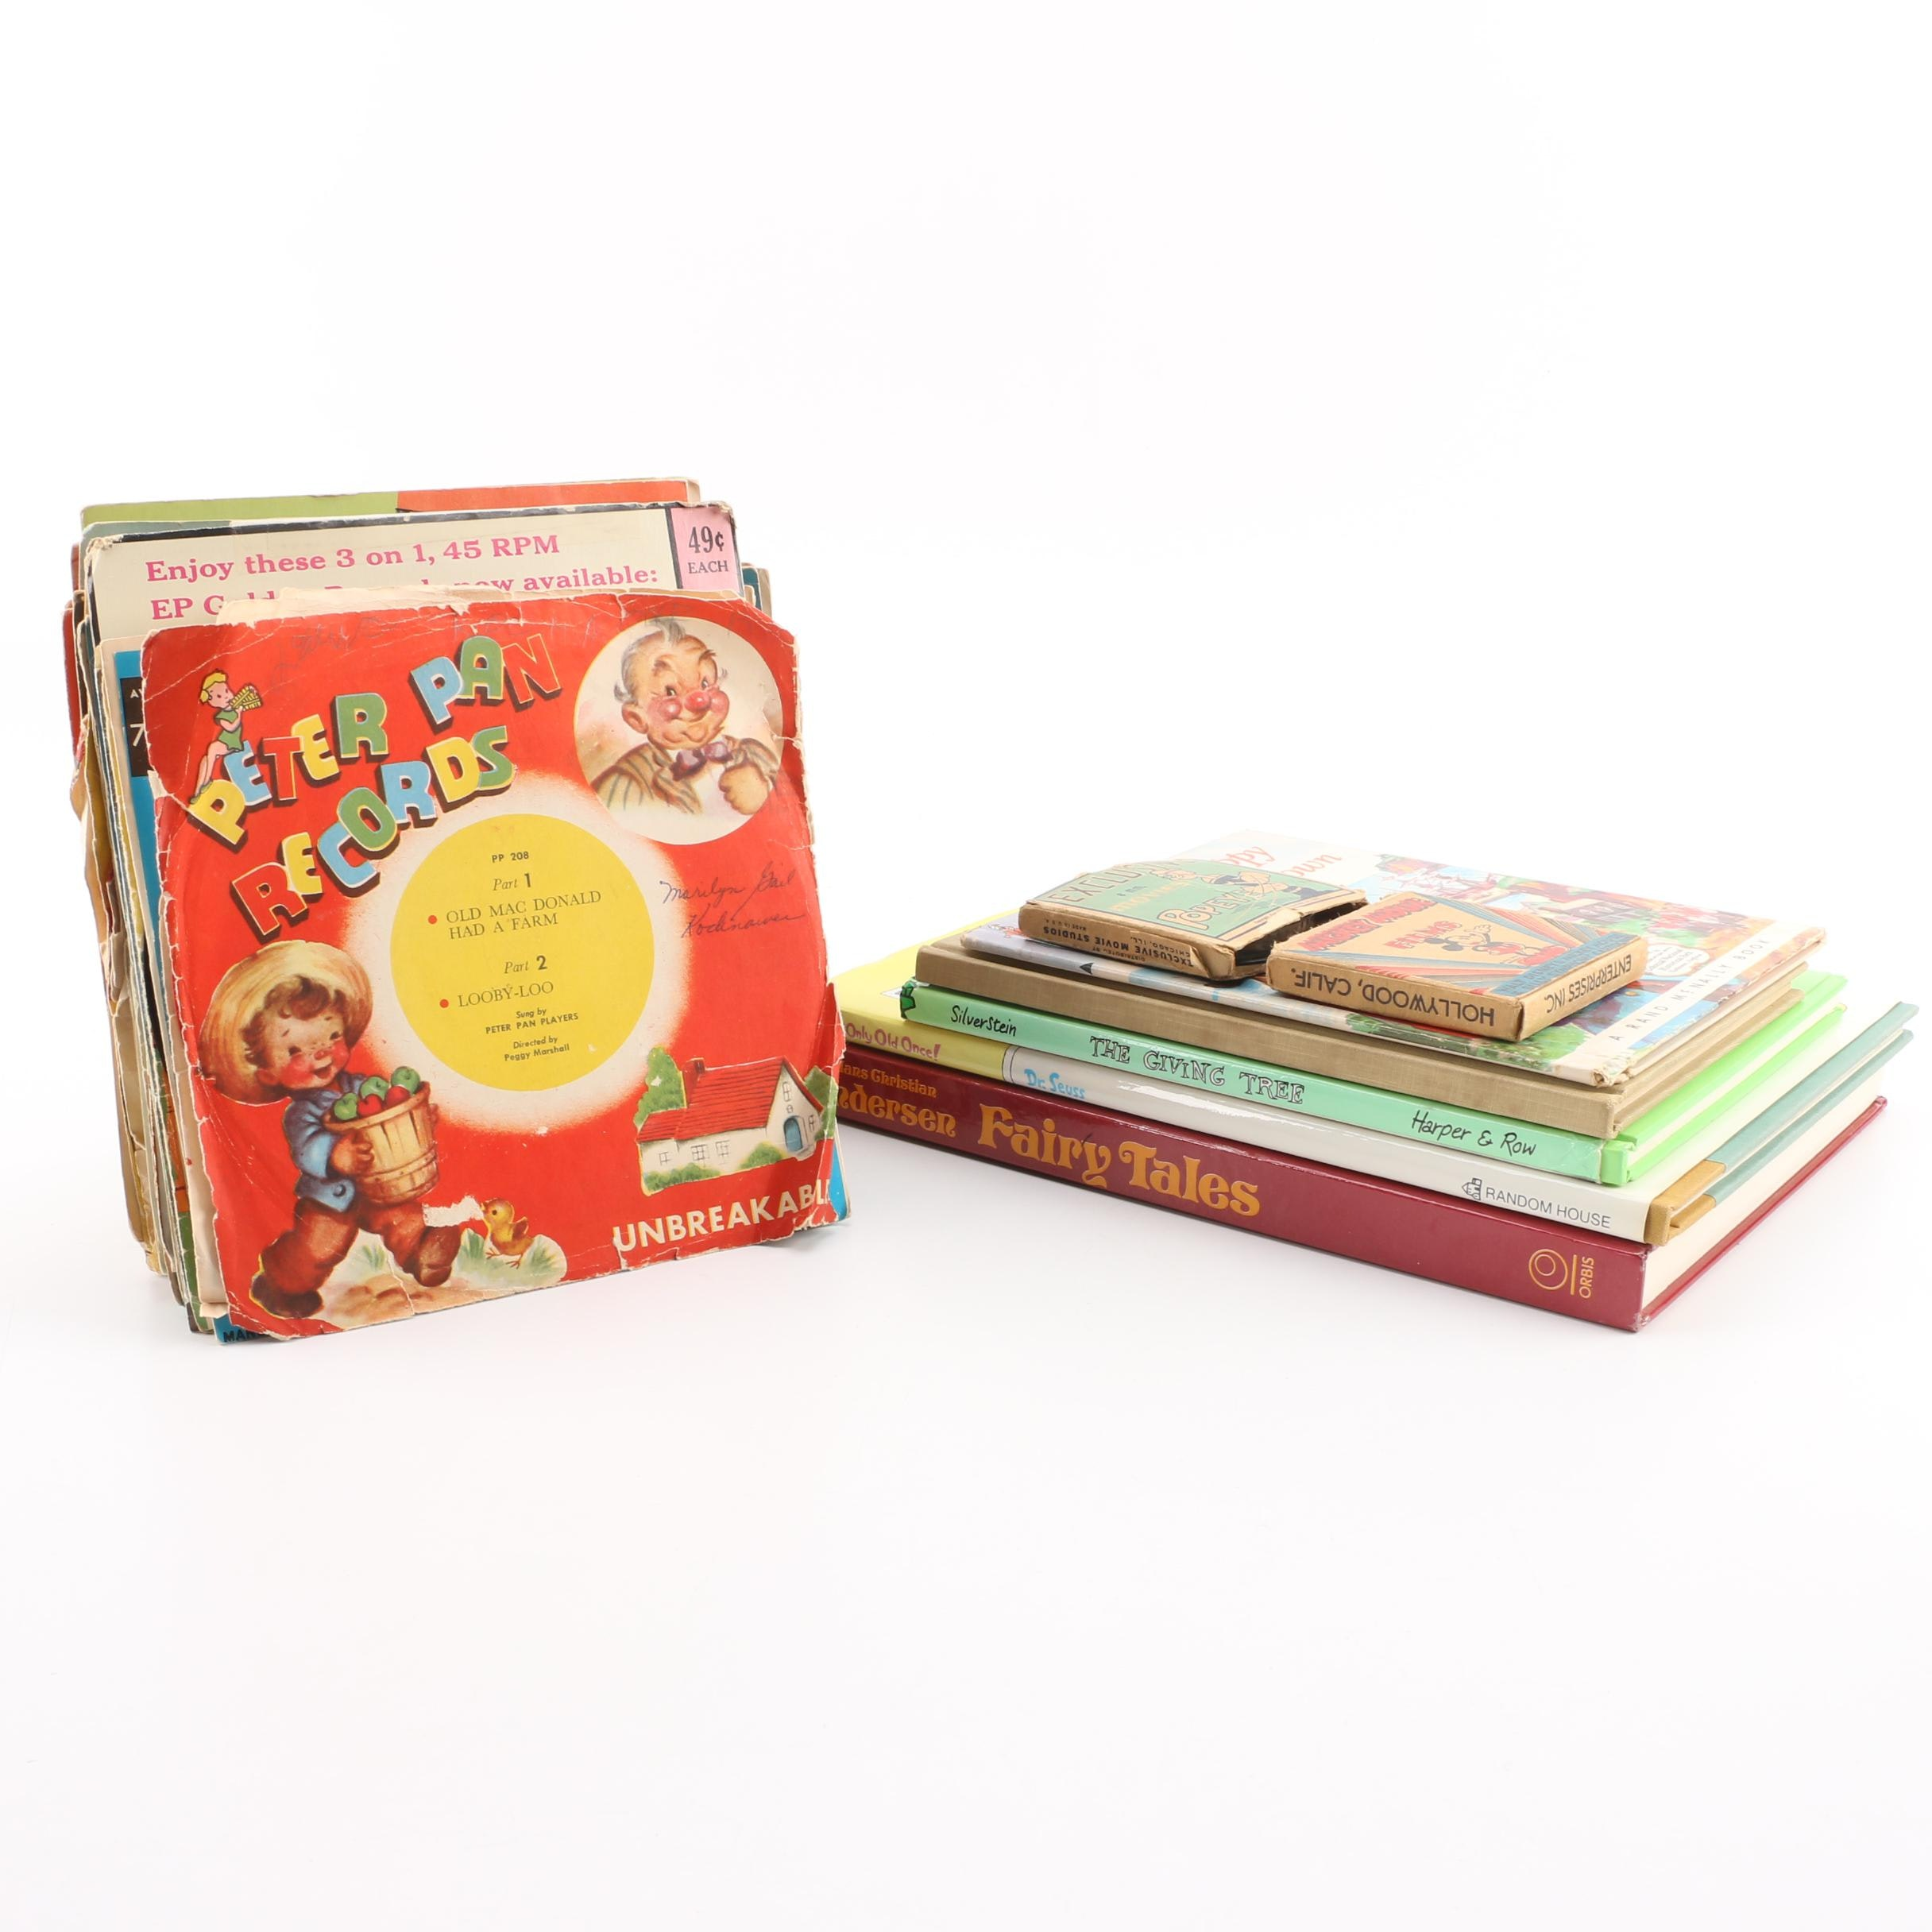 Vintage Children's Media Including 8mm Films, Books, and Records